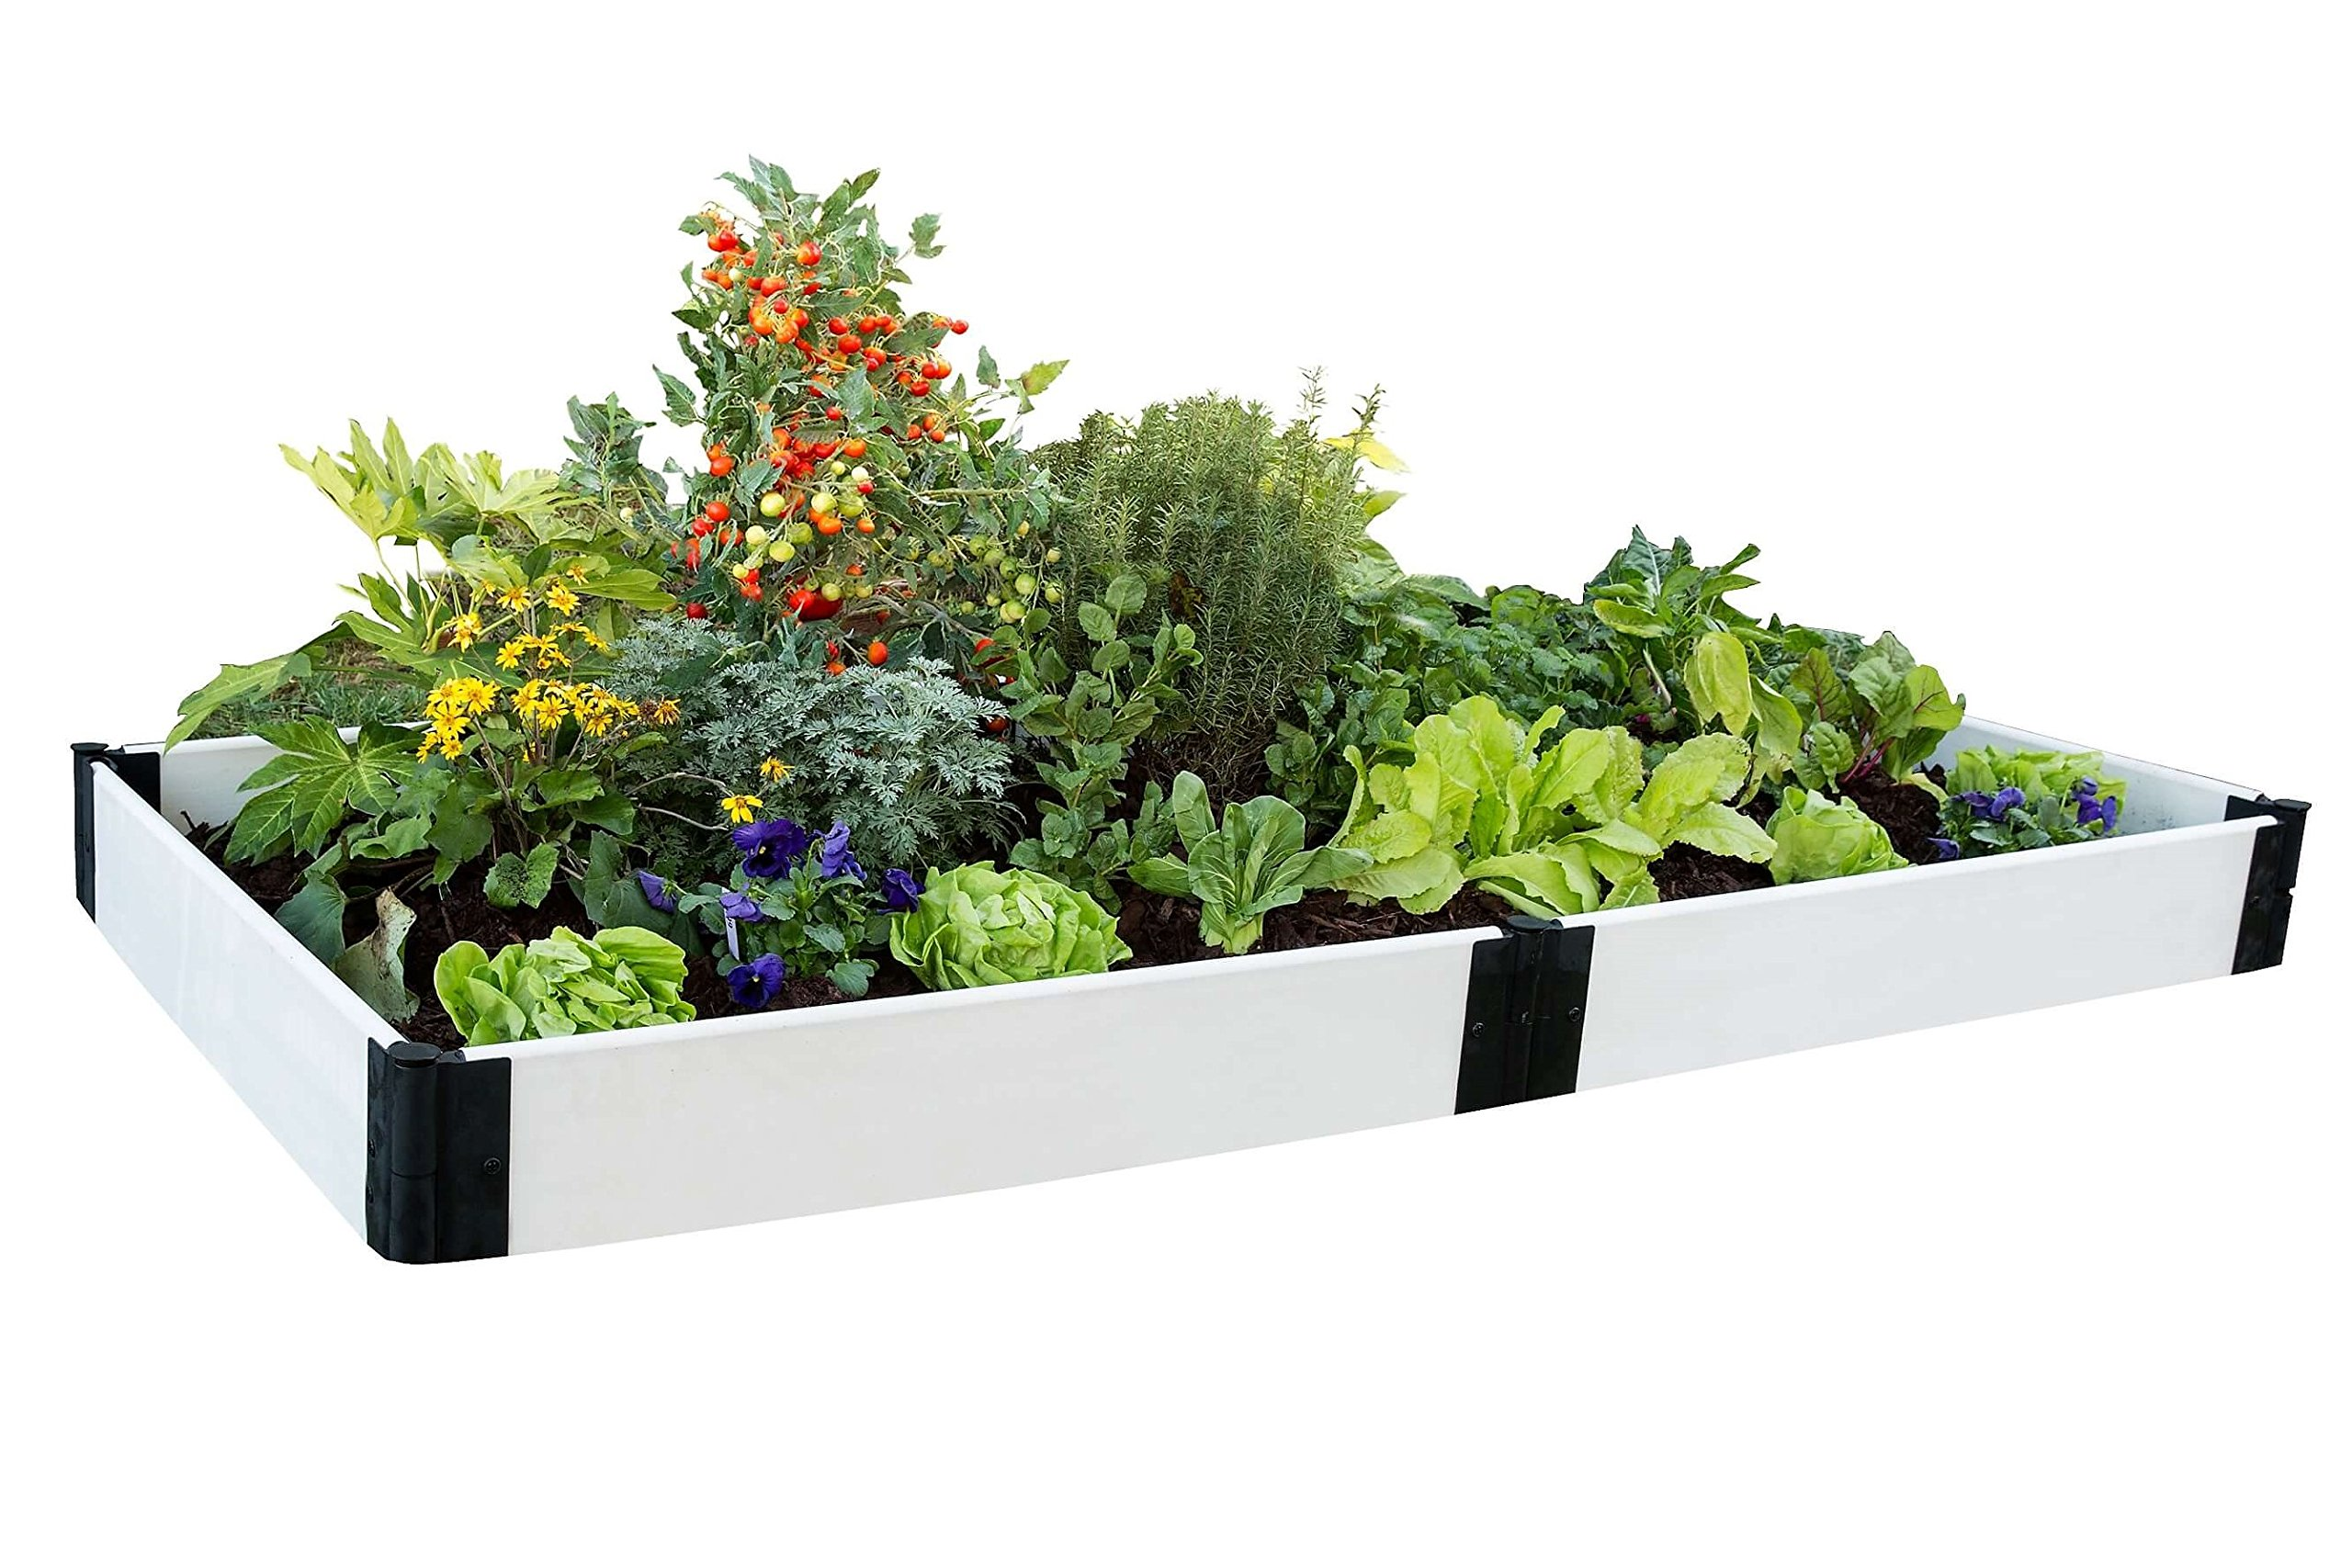 Frame It All 4ft x 8ft White Raised Garden Kit by Frame It All